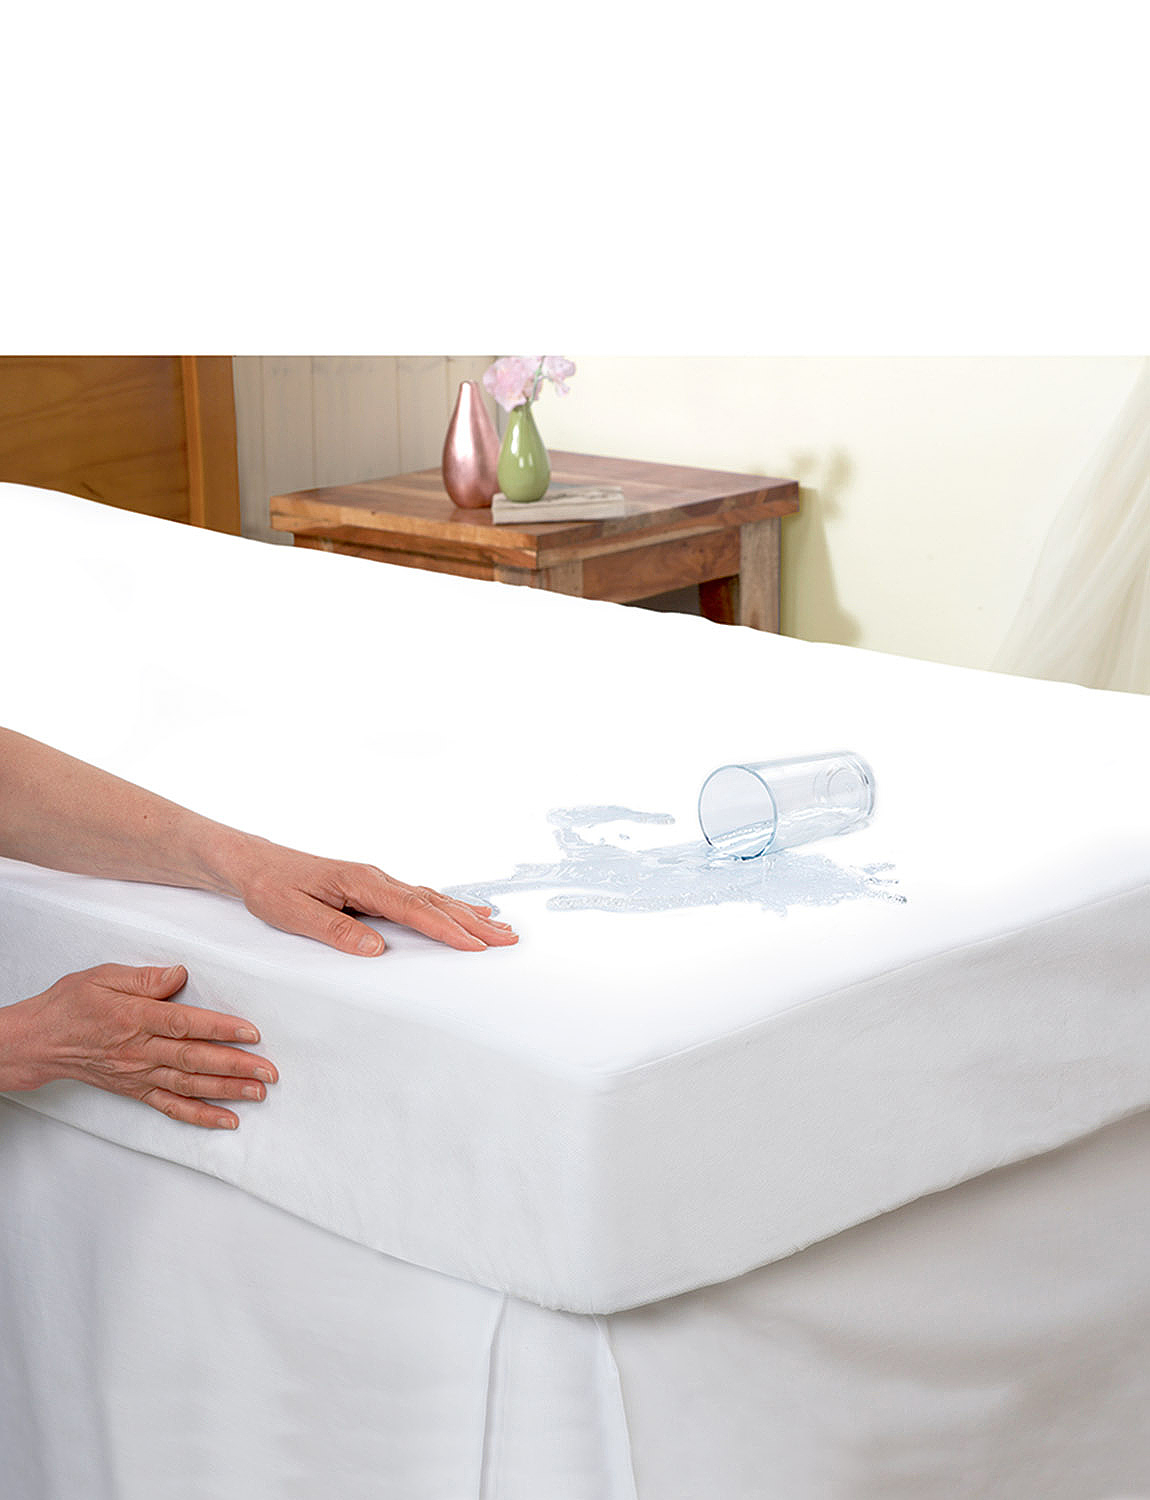 15 Inch Skirt Luxury Waterproof Flannelette Matress Protector - White